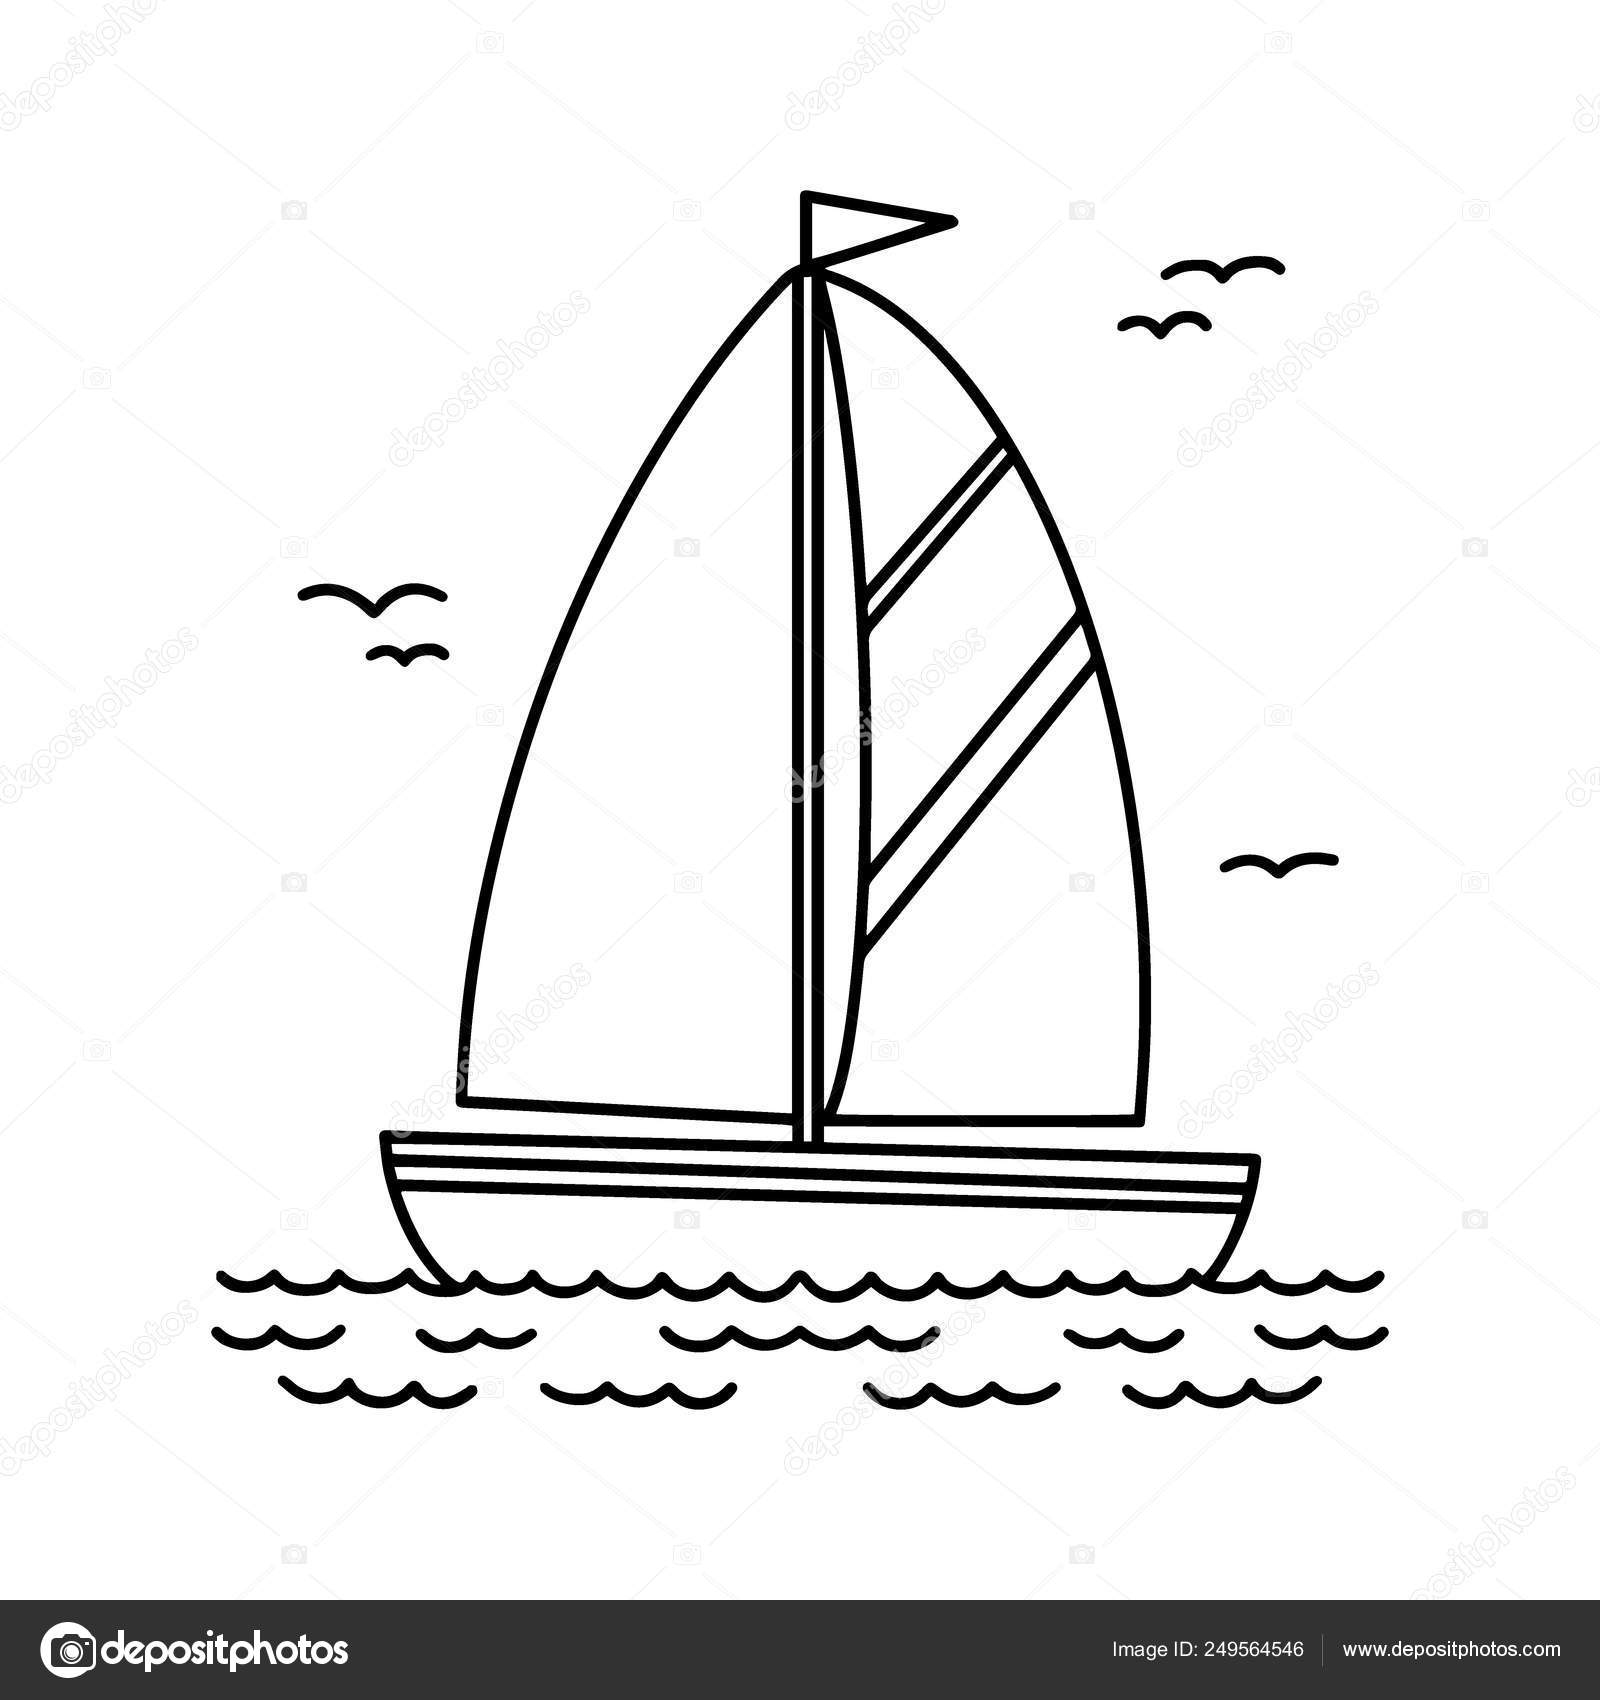 Pictures Boat Cartoon Black And White